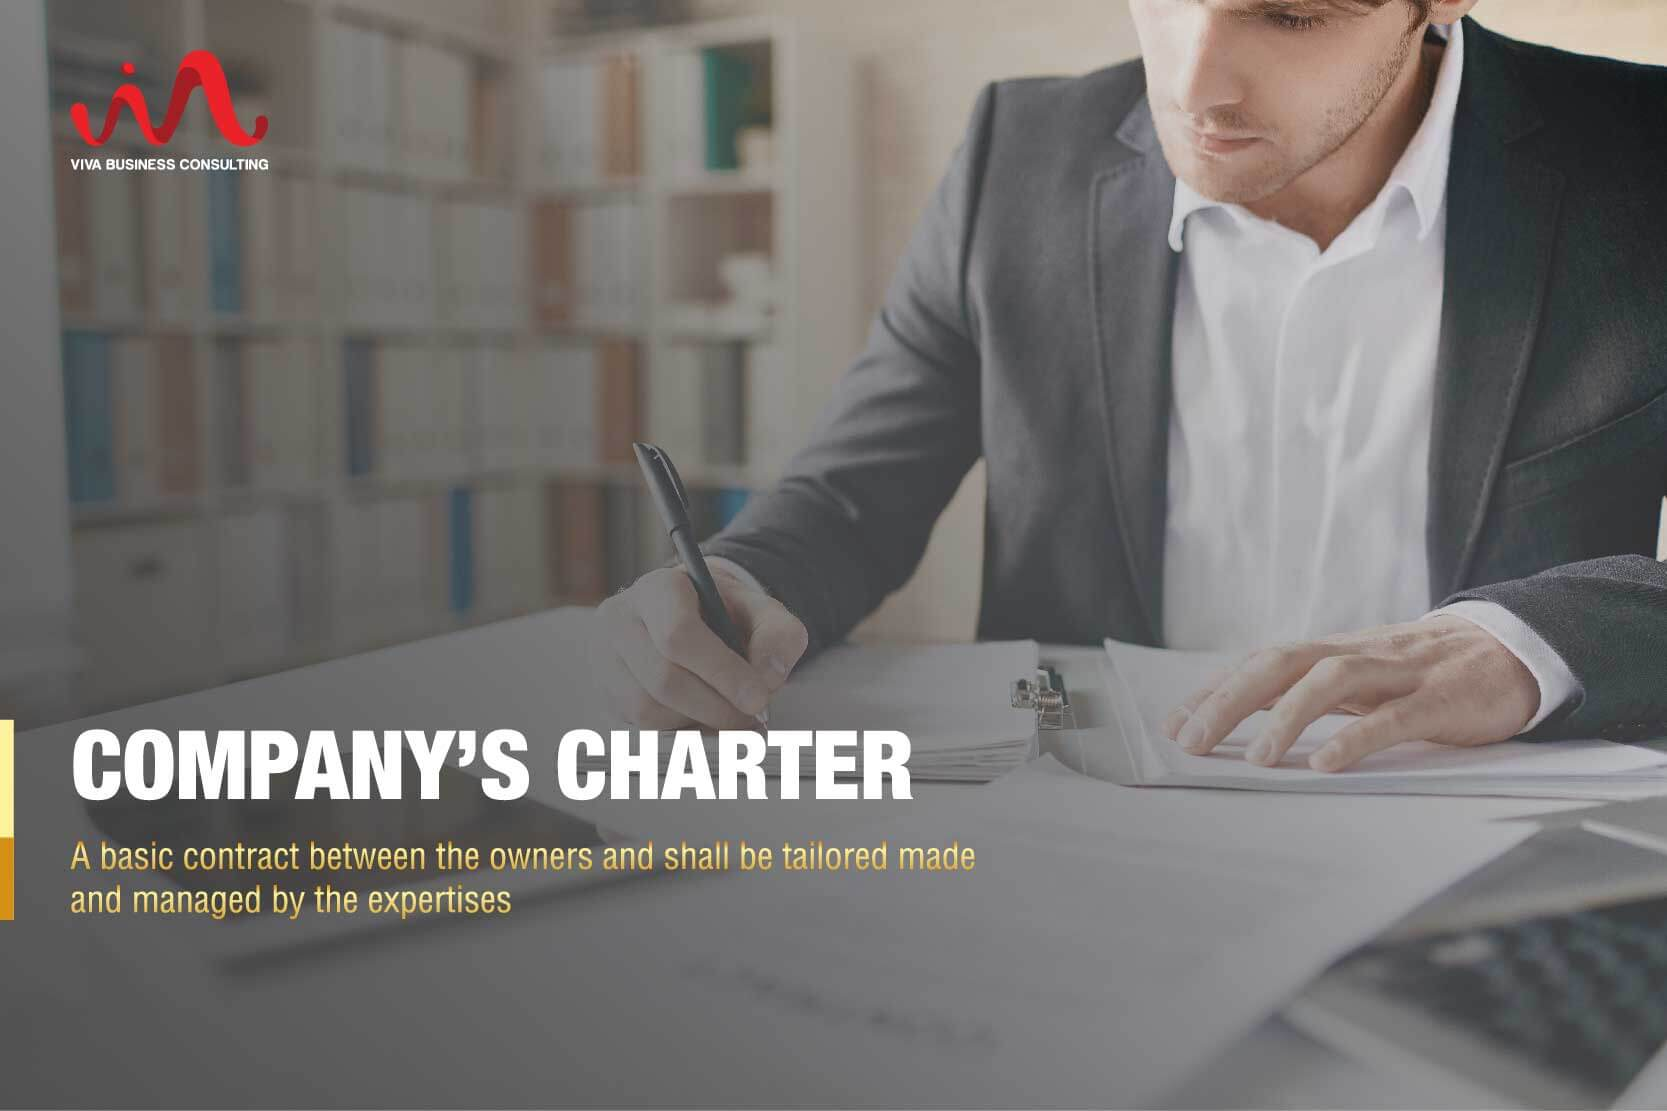 Company Charter in Vietnam